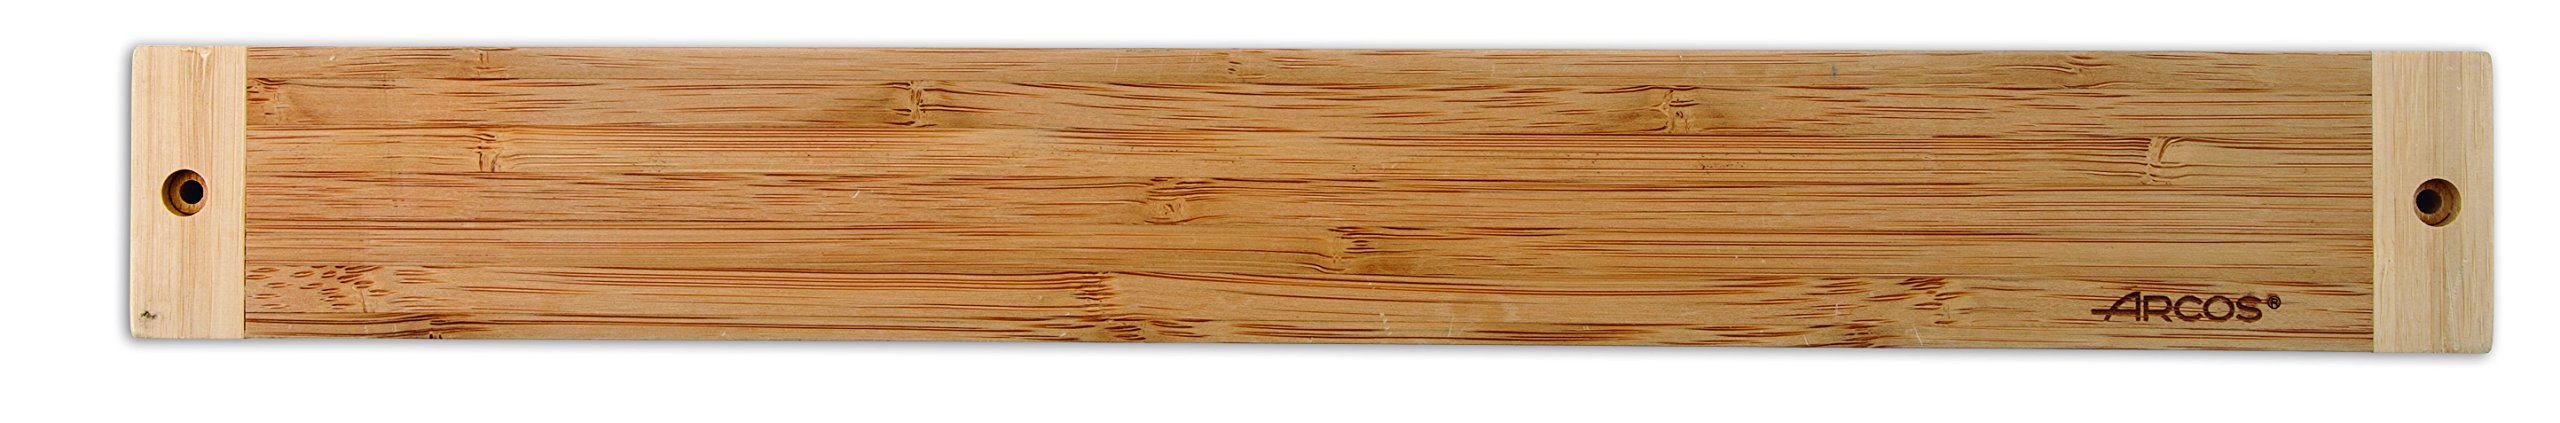 Arcos 18 by 2-Inch 350 by 45 mm Magnetic Rack Bamboo